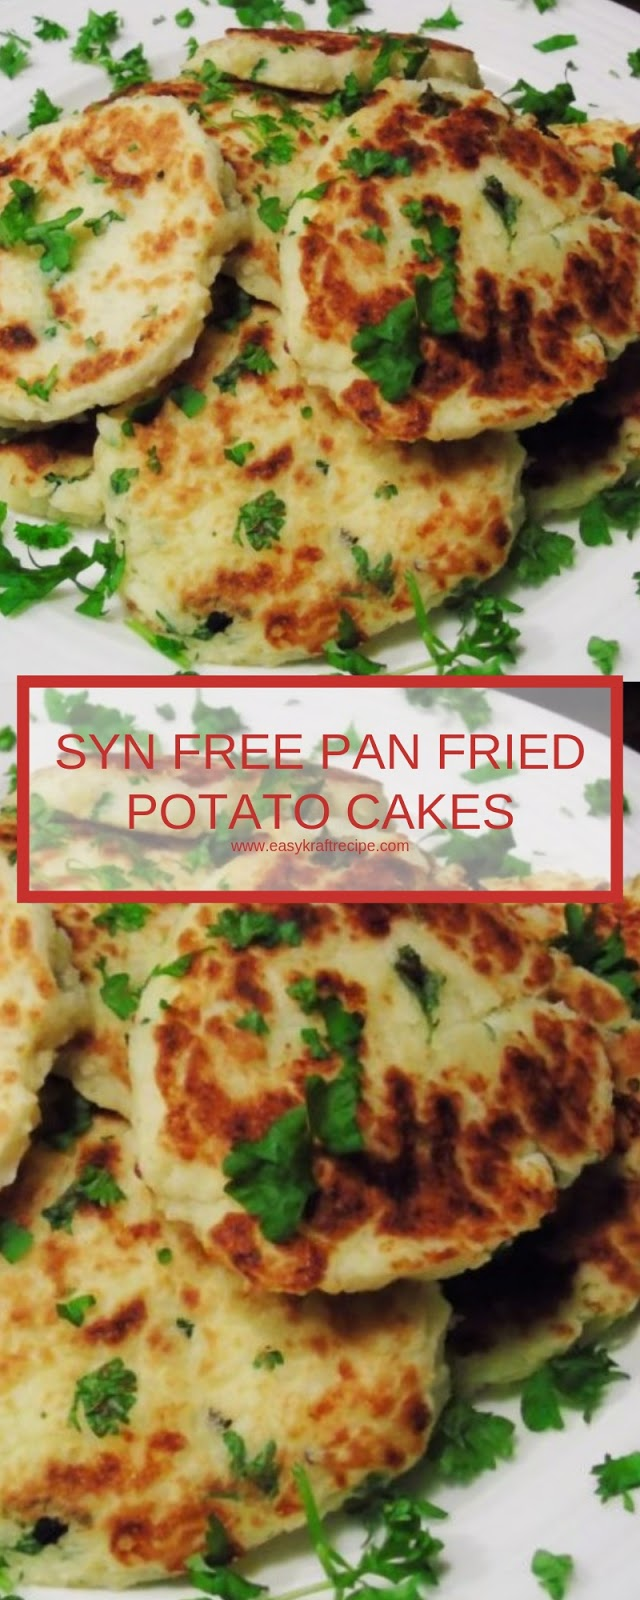 SYN FREE PAN FRIED POTATO CAKES